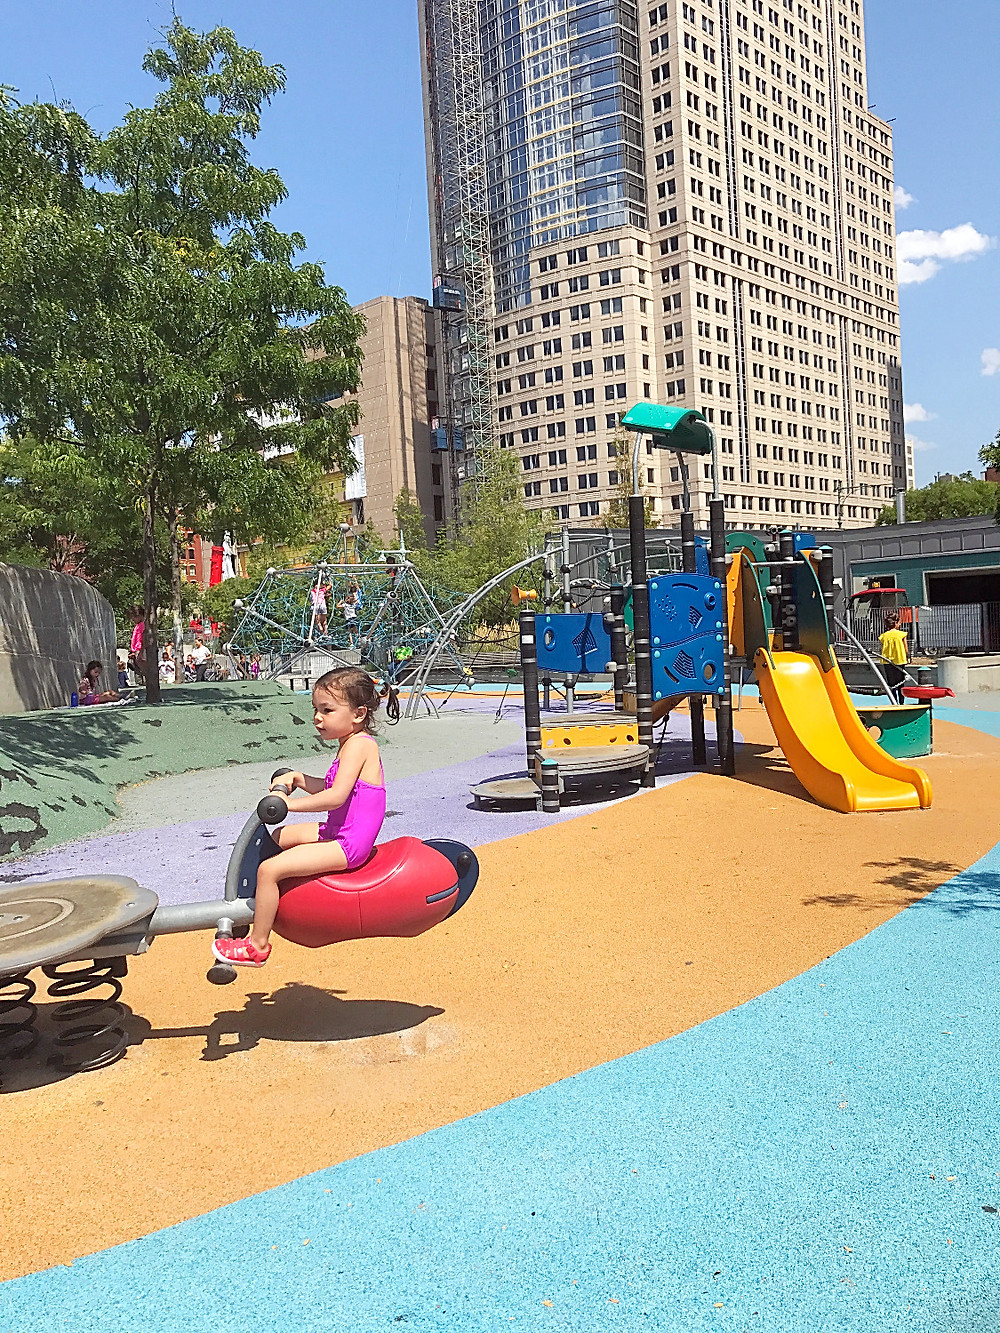 Battery Park City, Hudson River Park, nyc summer with kids, Pier 25, nyc playgrounds, Preschool Art, Curious G and Me, Oculus, One World Trade Center